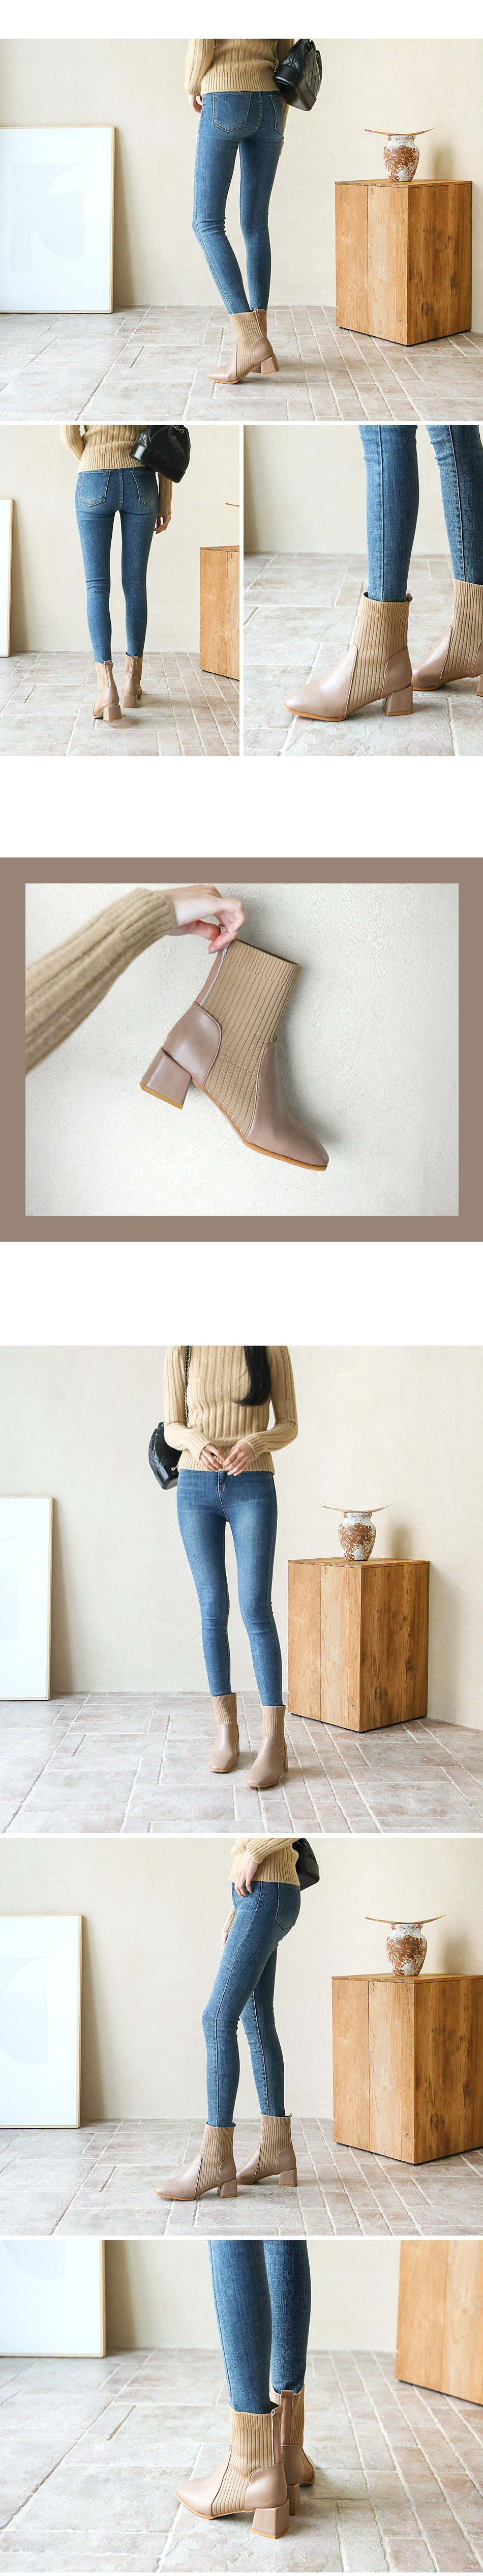 Tria socks ankle boots 5cm